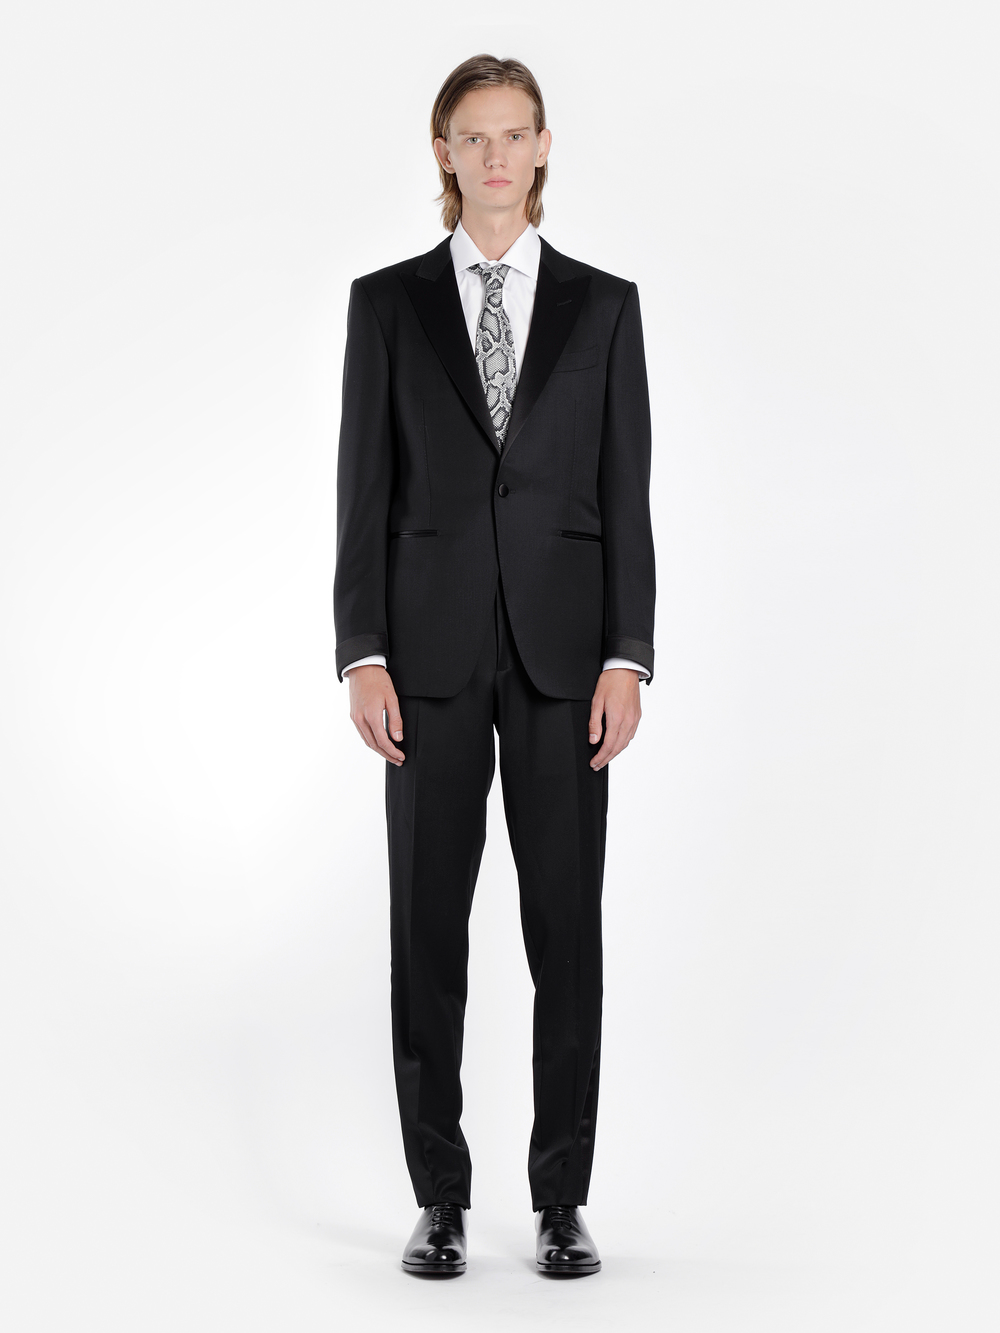 30773f7c768dc Tom Ford - Costume - Antonioli.eu